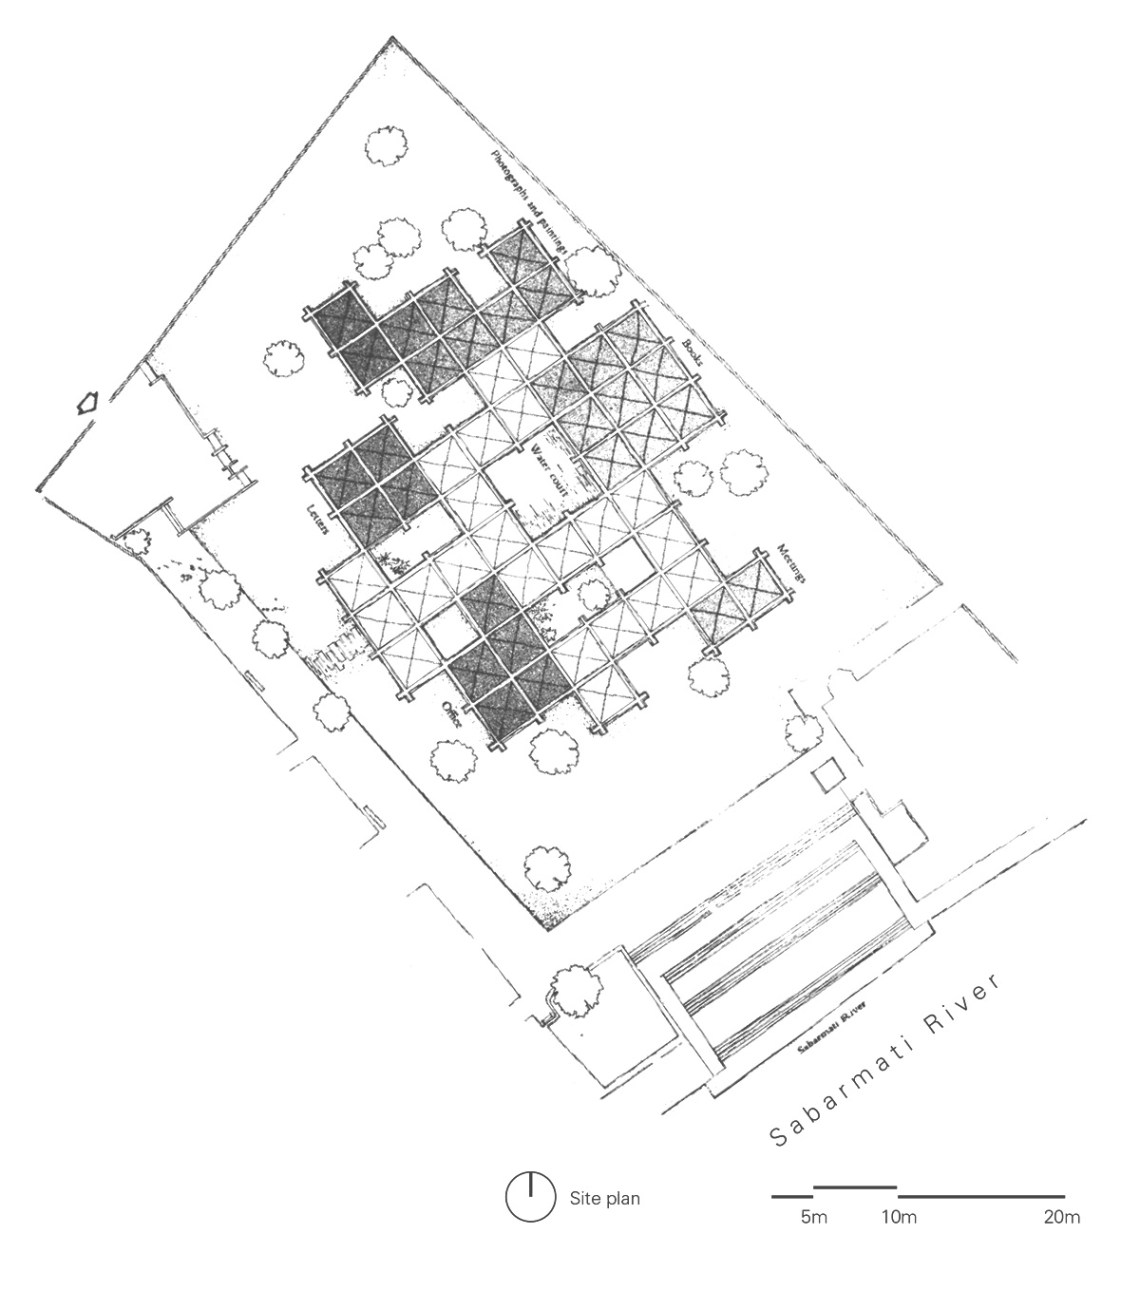 Floor Plan of the Museum